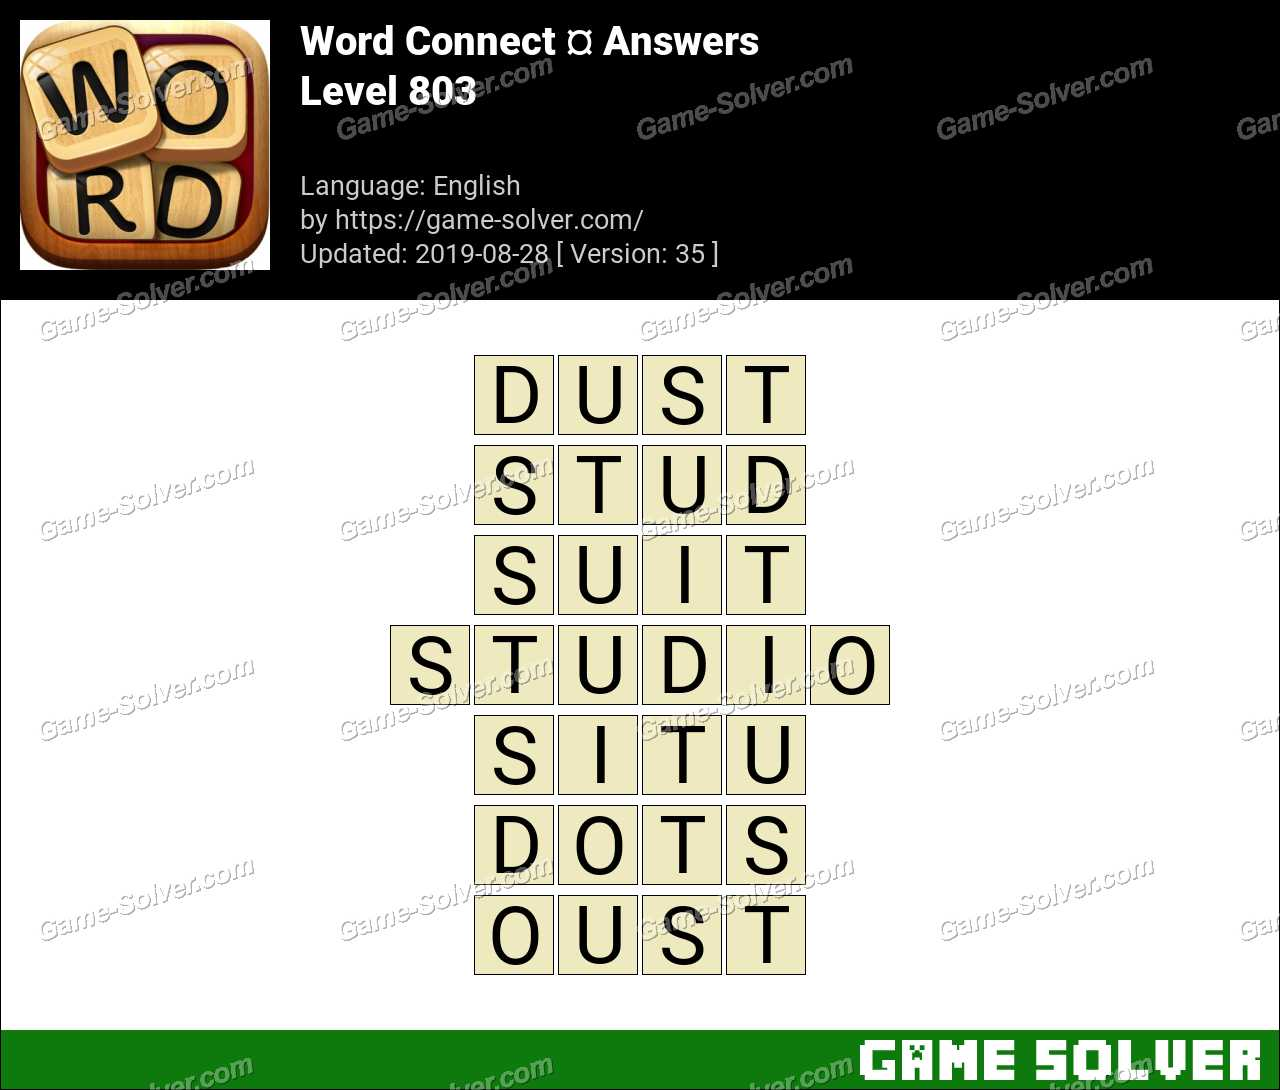 Word Connect Level 803 Answers